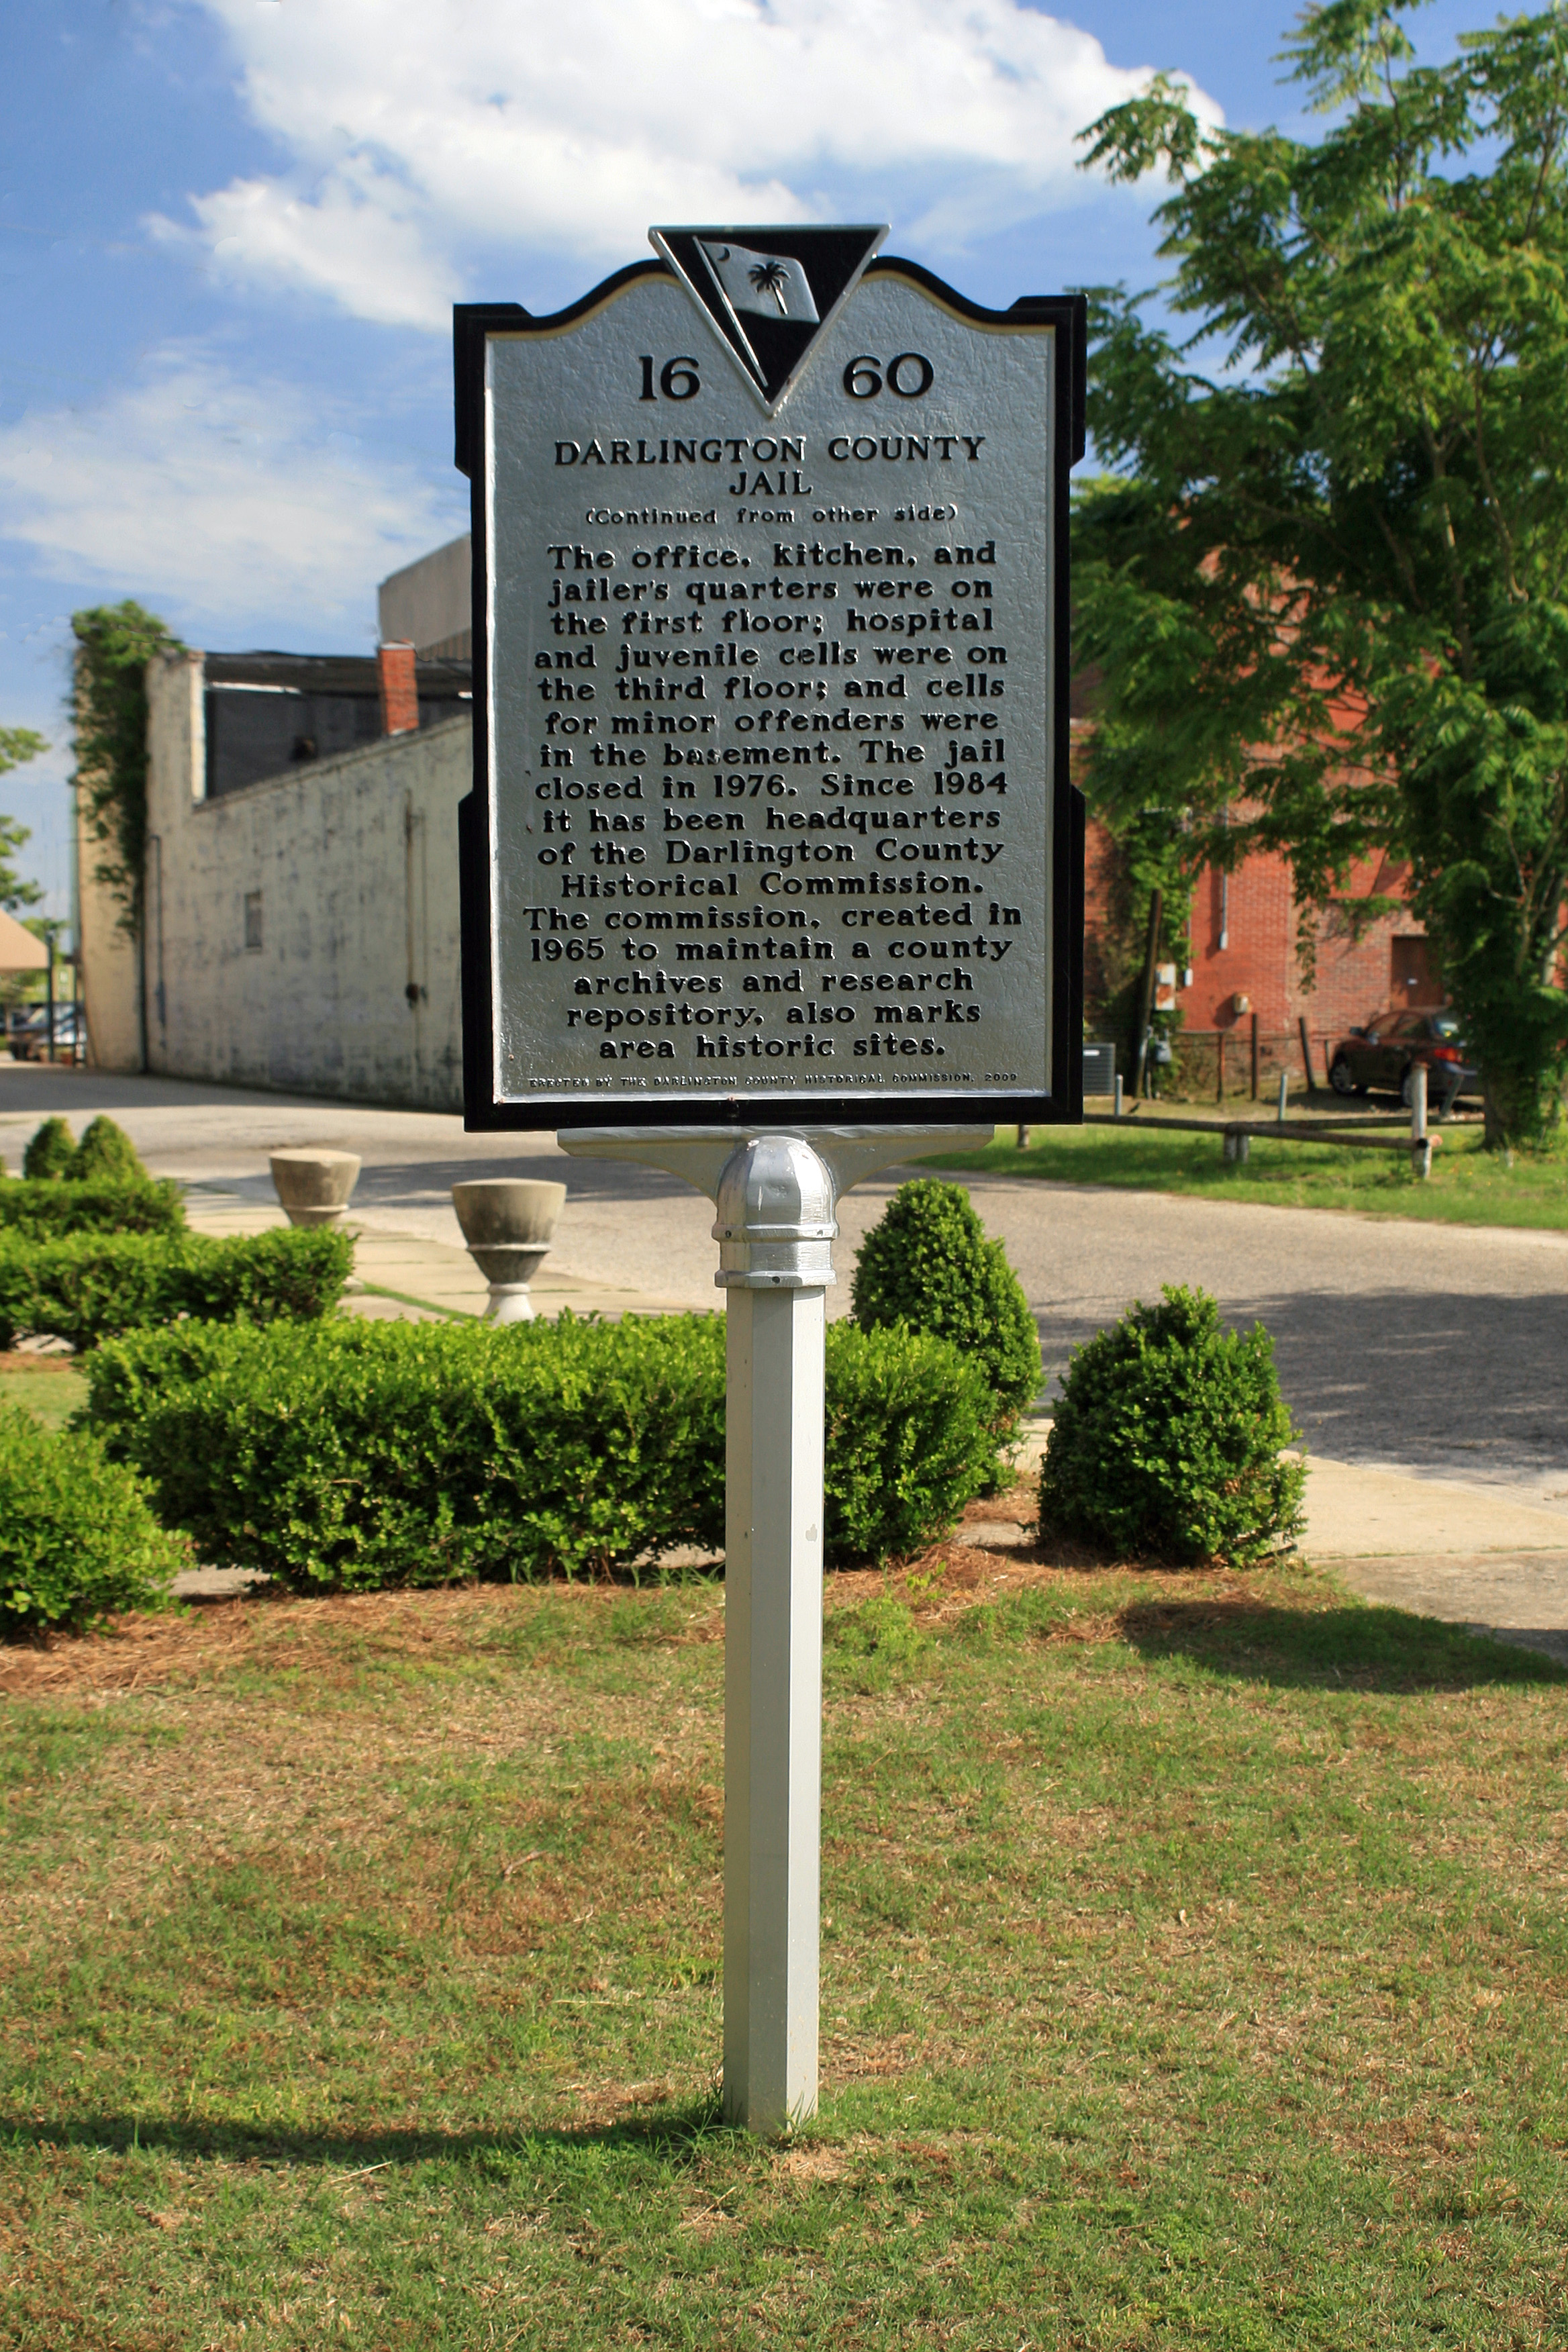 Historical Marker for the 1937 Darlington County Jail, Houses the Darlington County Historical Commission.